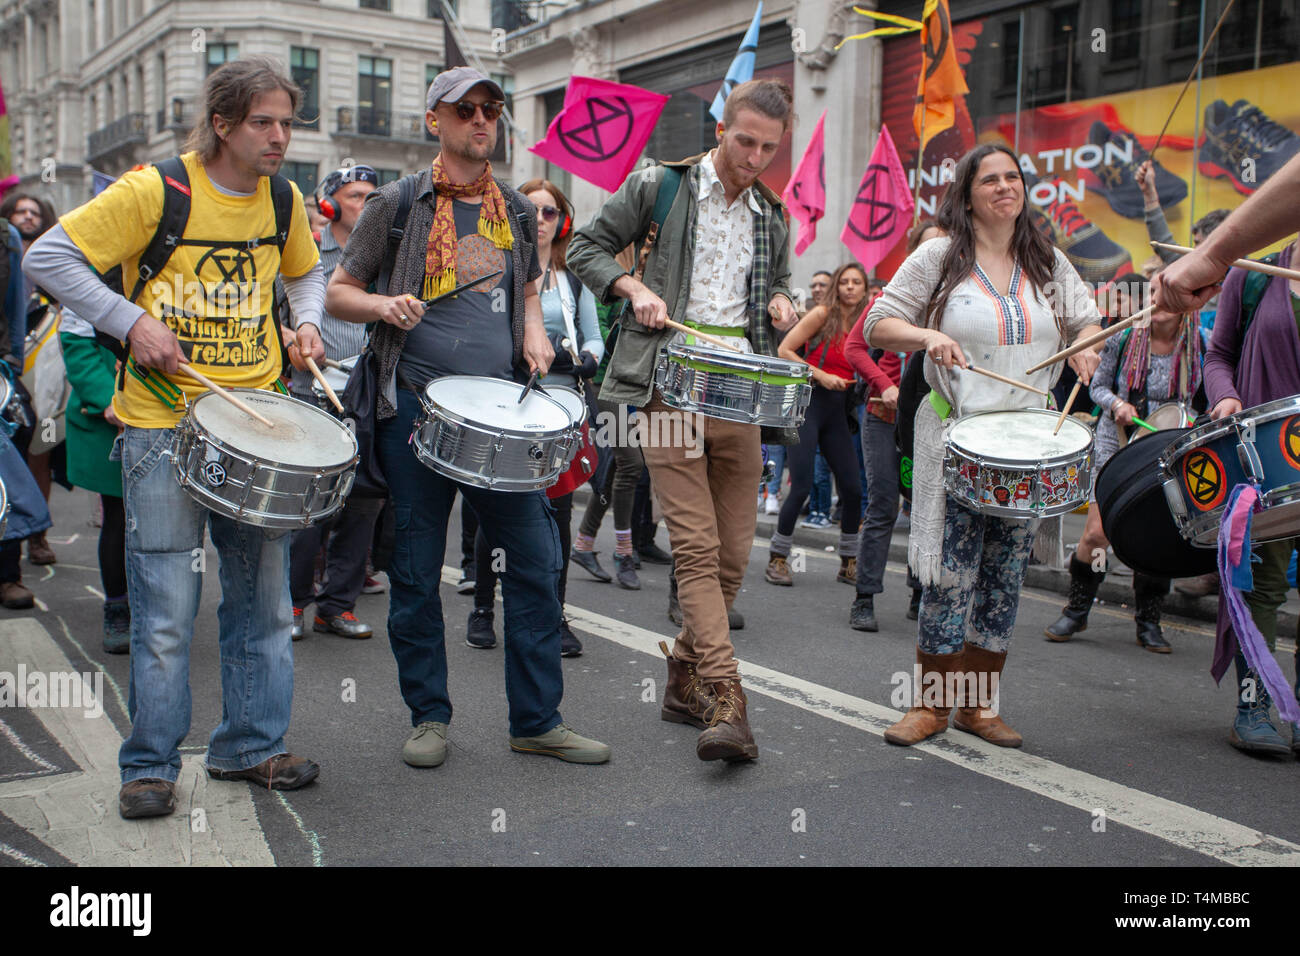 17th April 2019: Extinction Rebellion: Climate change activists playing drums along Regent Street, Oxford Circus, London, UK Stock Photo